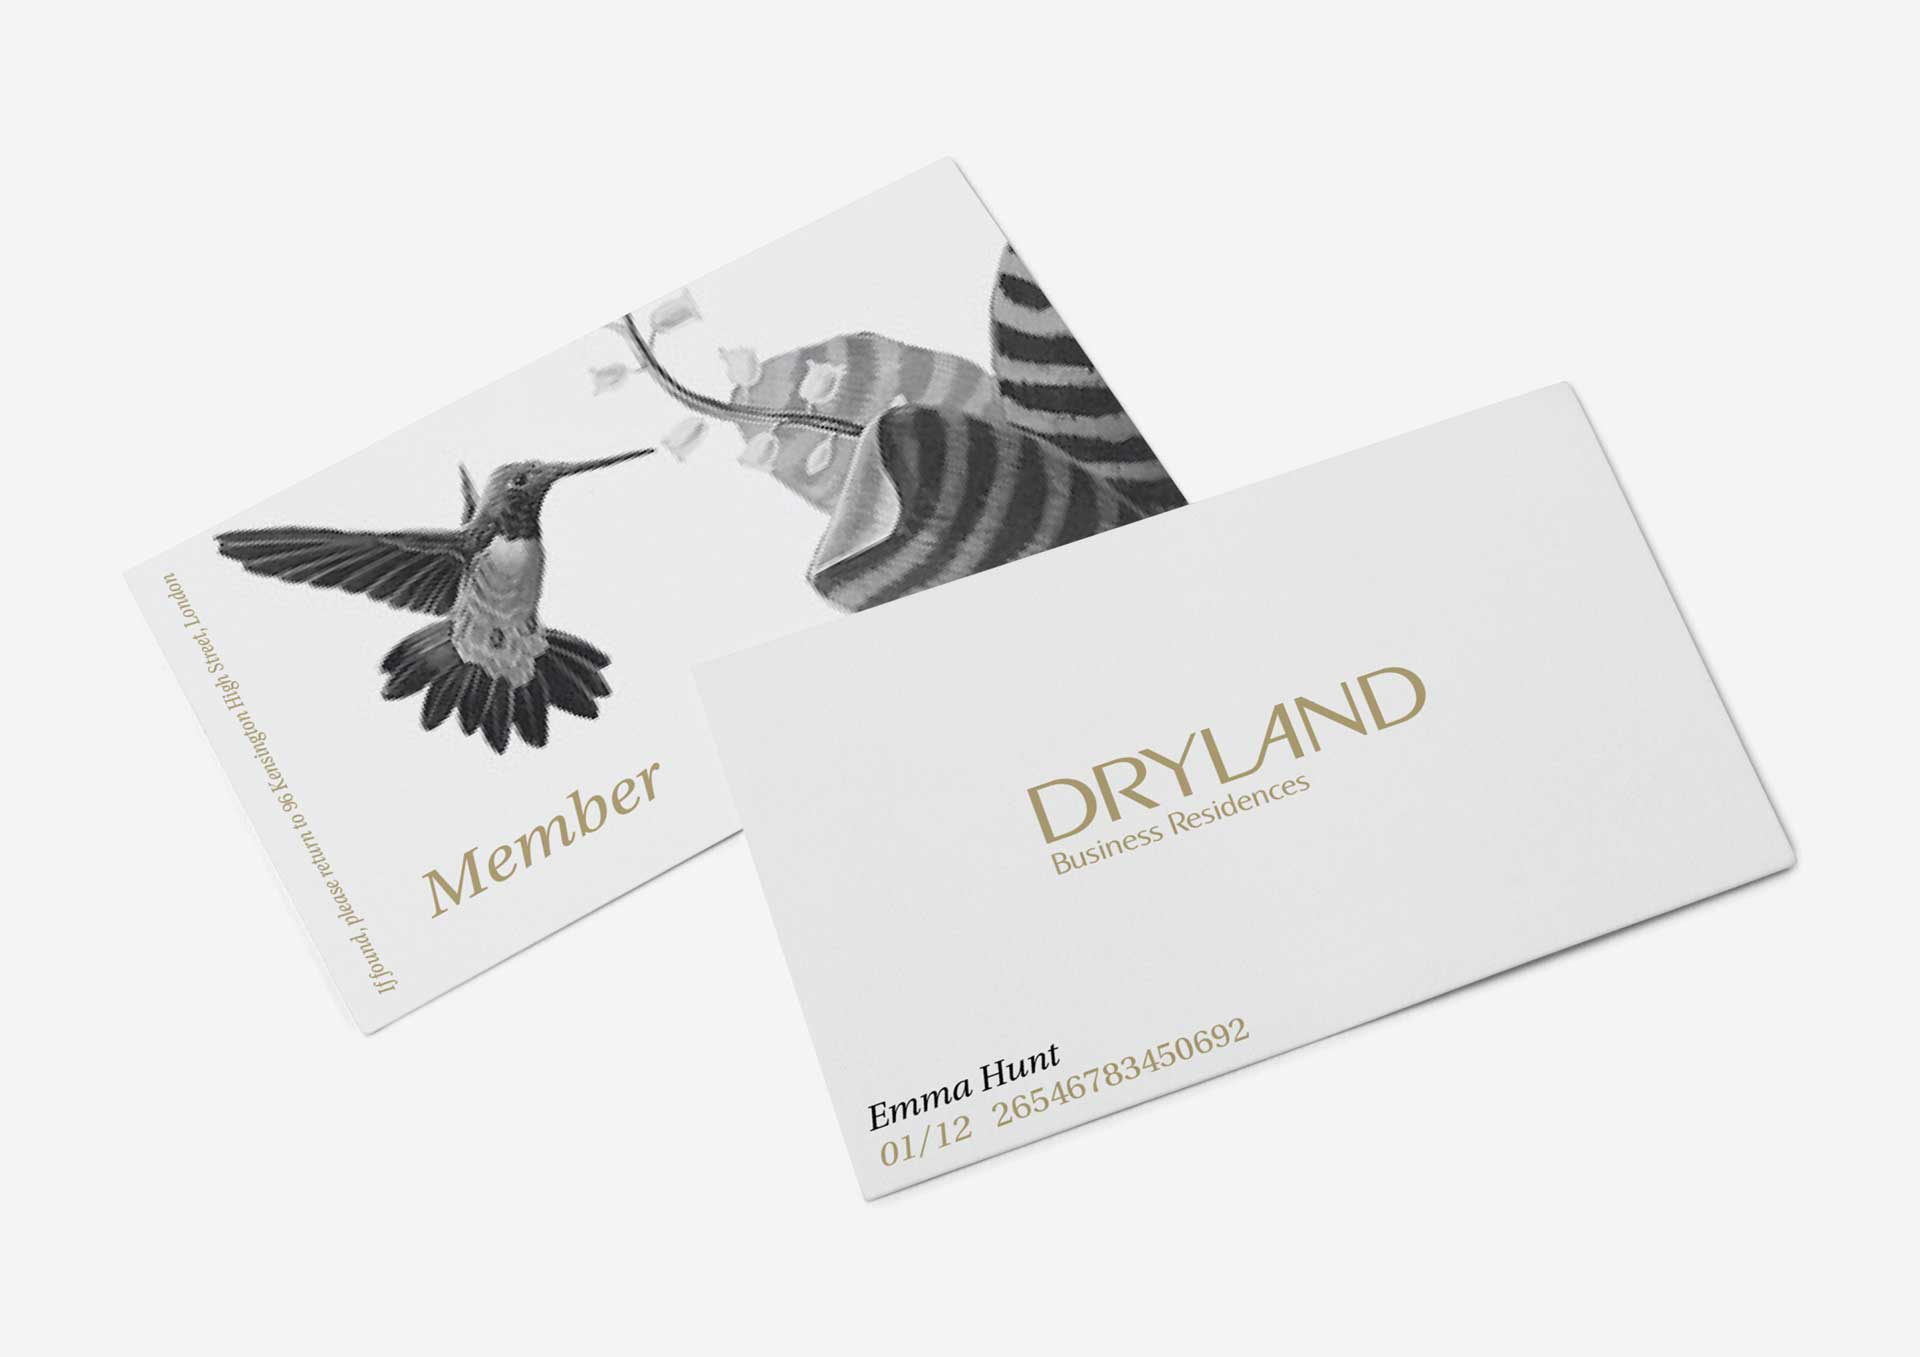 dryland-business-cards-1